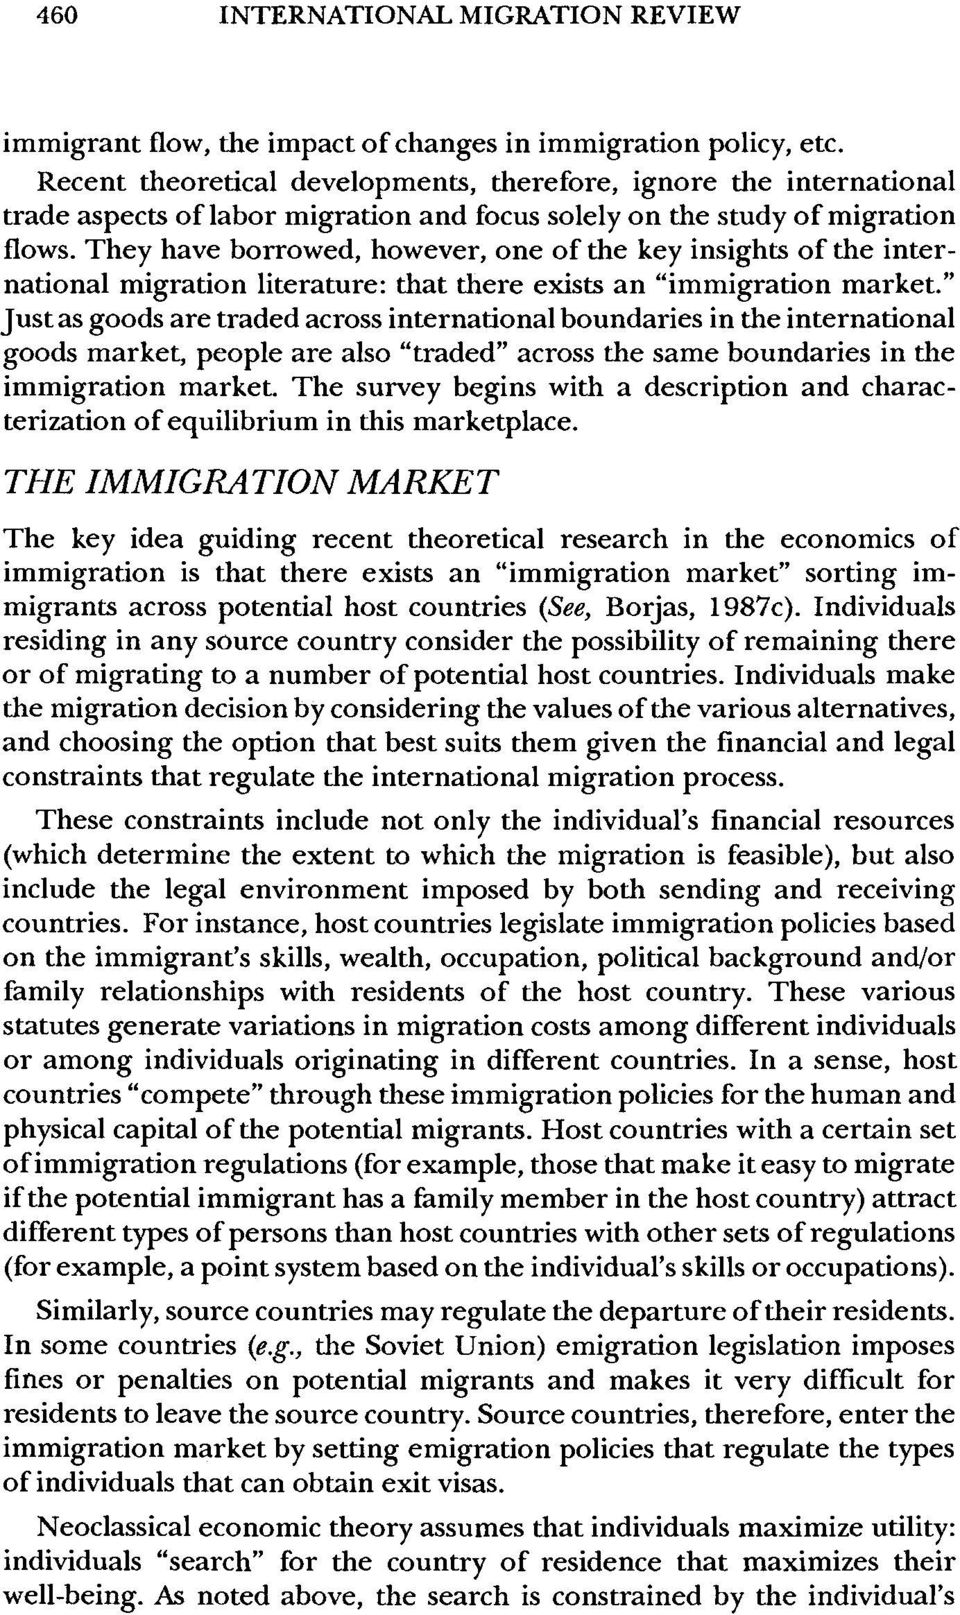 "They have borrowed, however, one of the key insights of the inter? national migration literature: that there exists an ""immigration market."